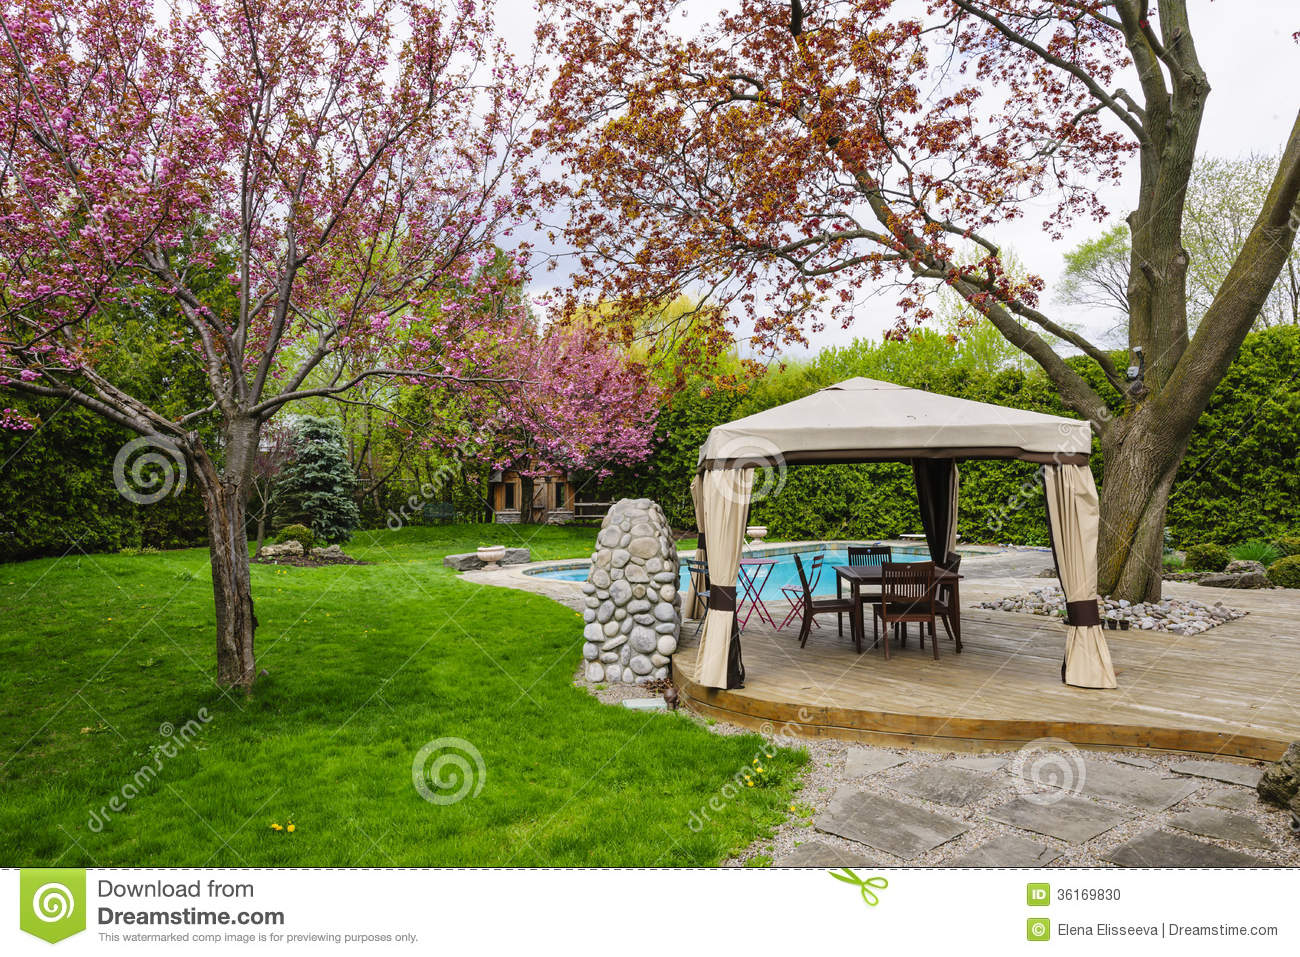 Residential backyard with gazebo, deck, stone patio and swimming pool.